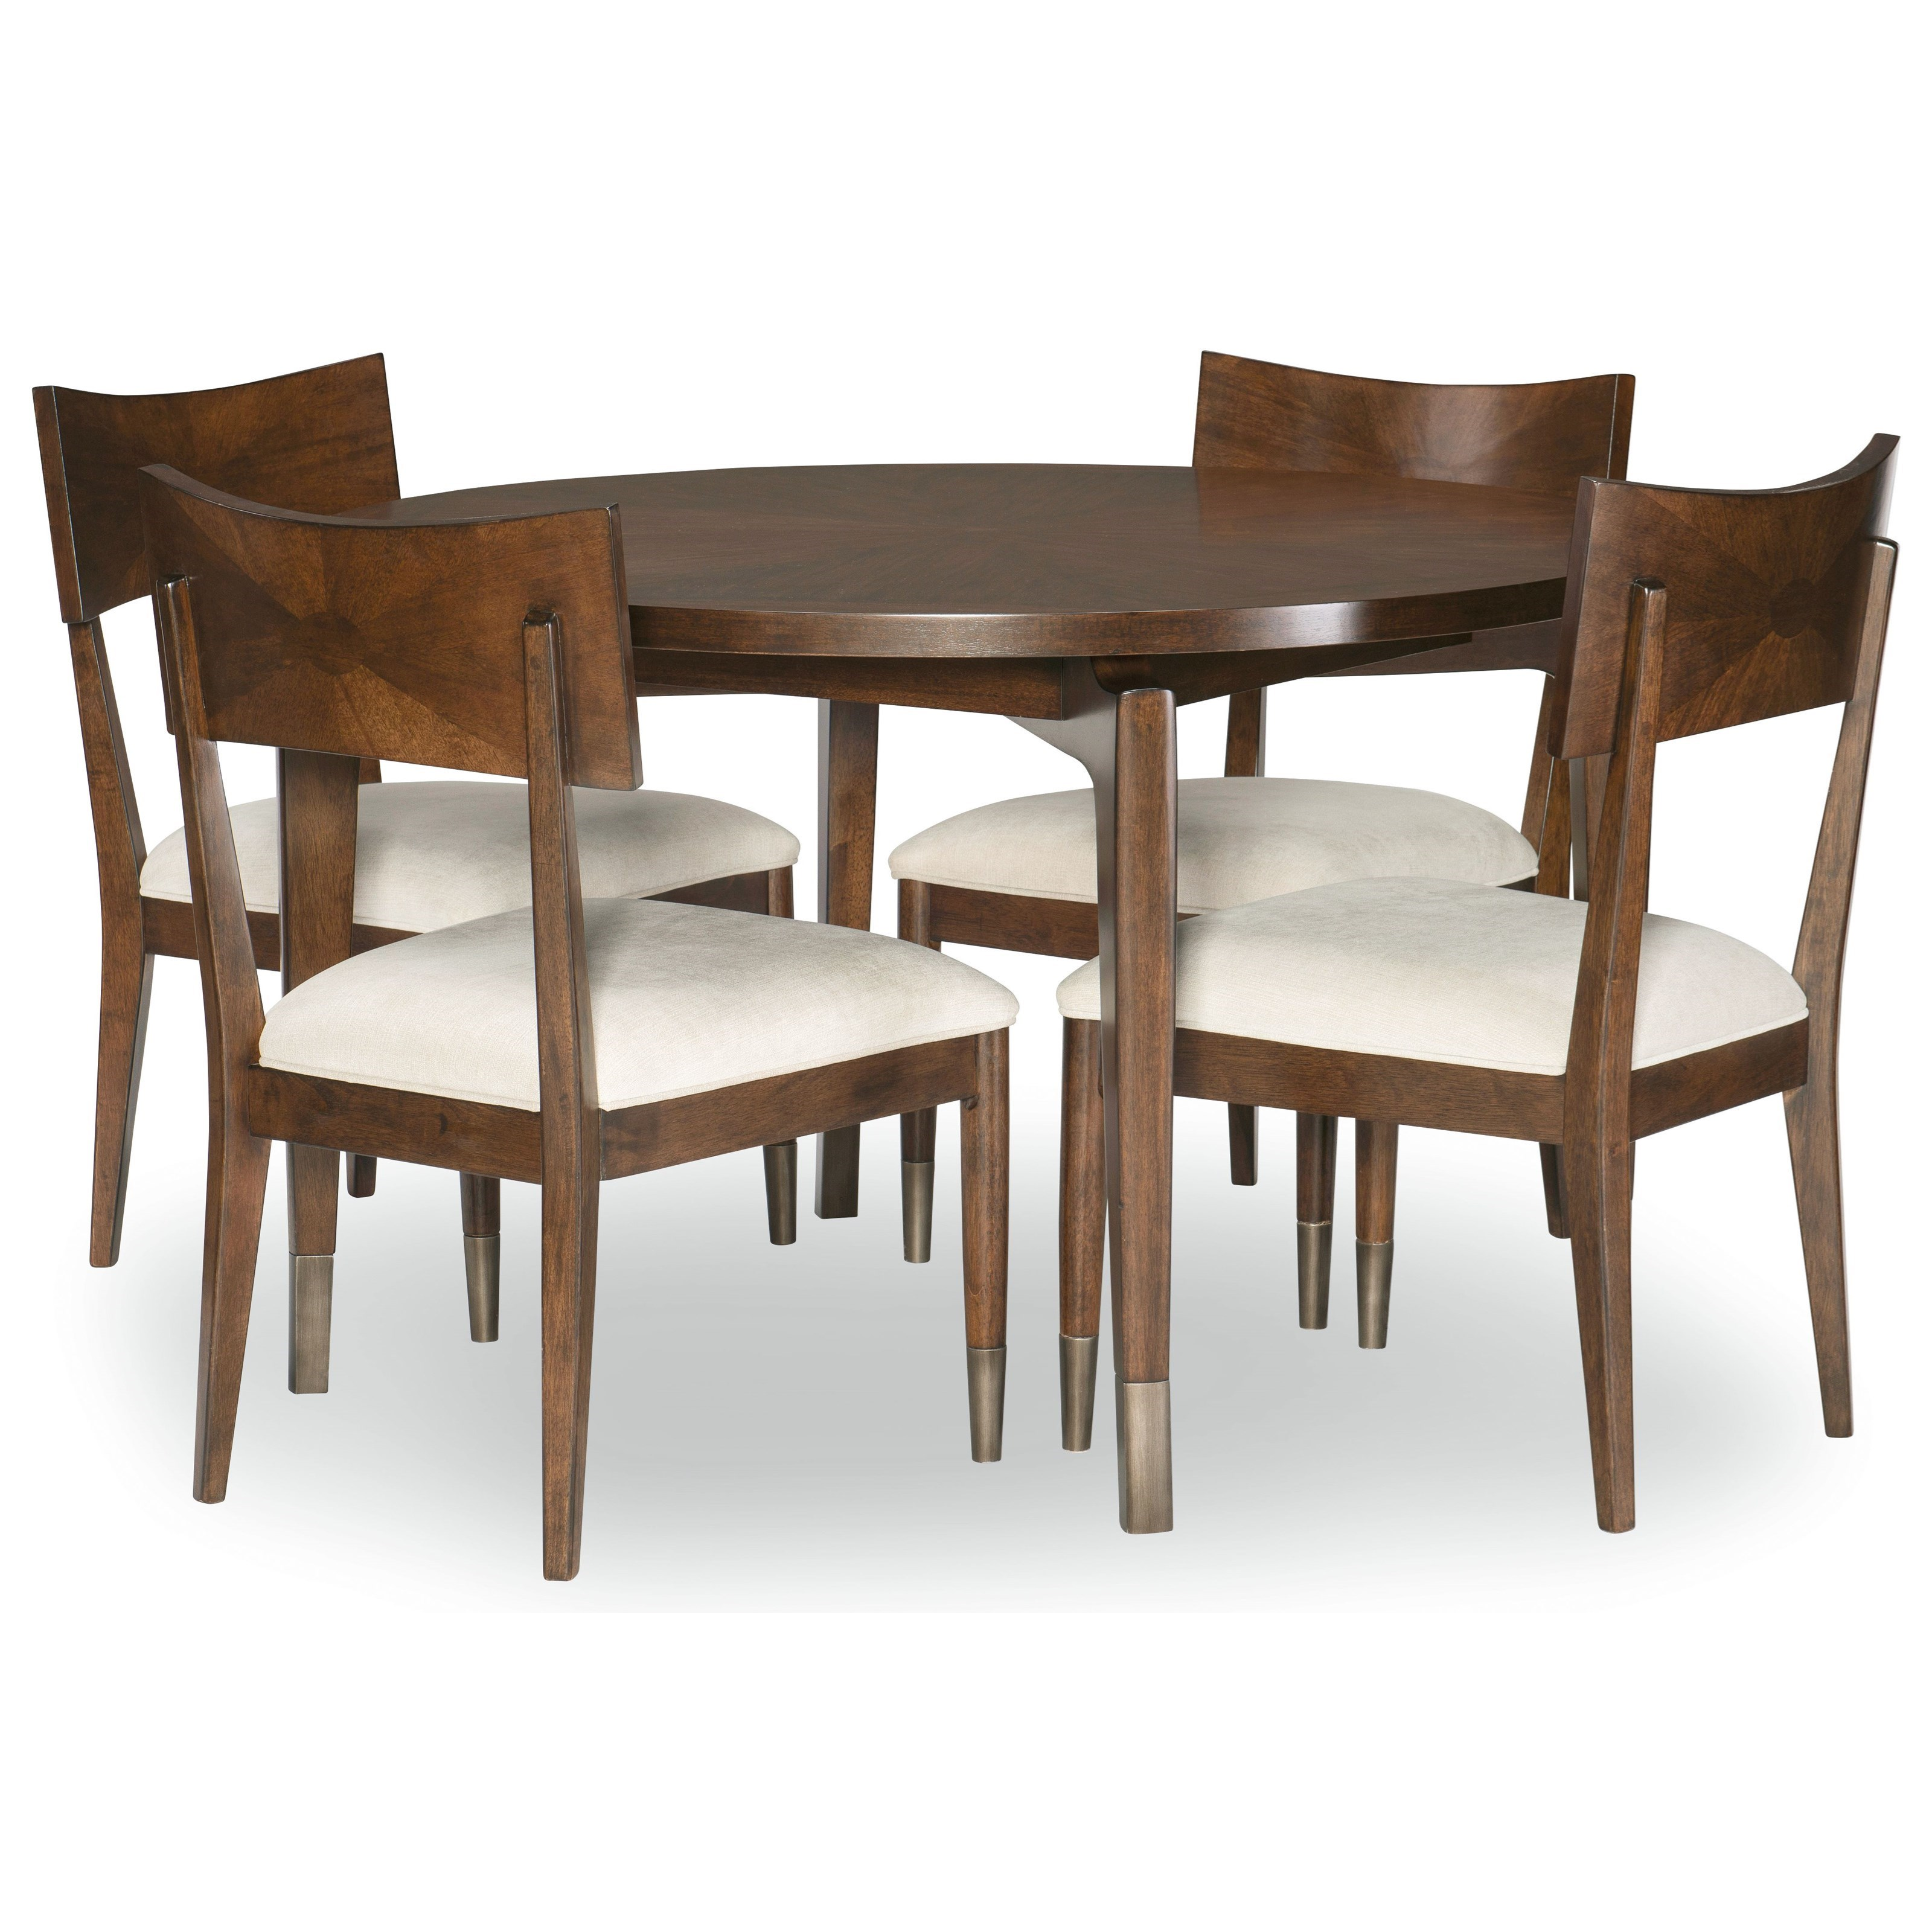 Savoy 5-Piece Table and Chair Set by Legacy Classic at Stoney Creek Furniture